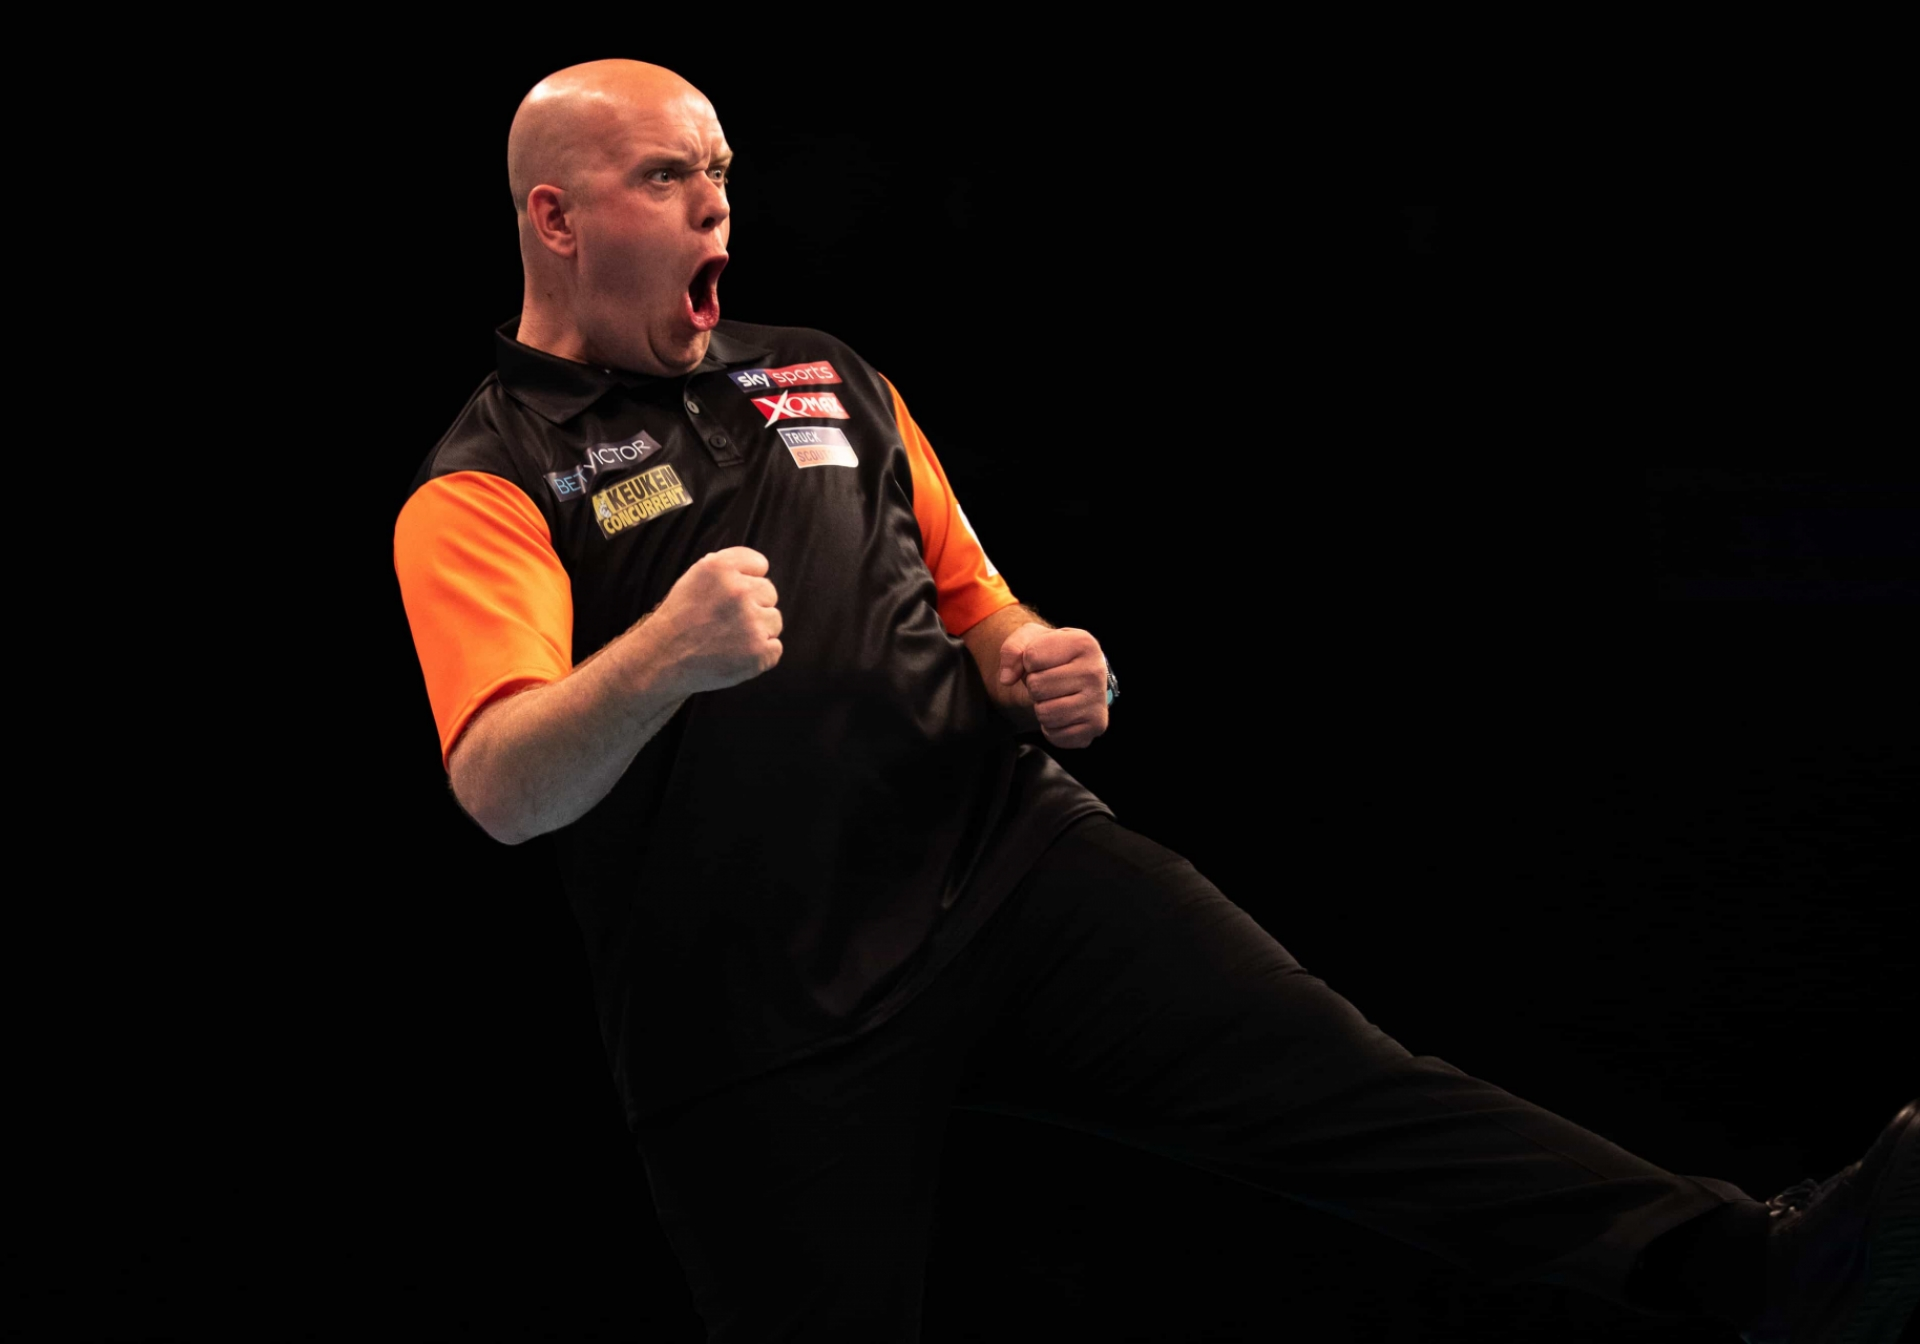 Netherlands' Michael van Gerwen - BetVictor World Cup of Darts (Stefan Strassenberg)